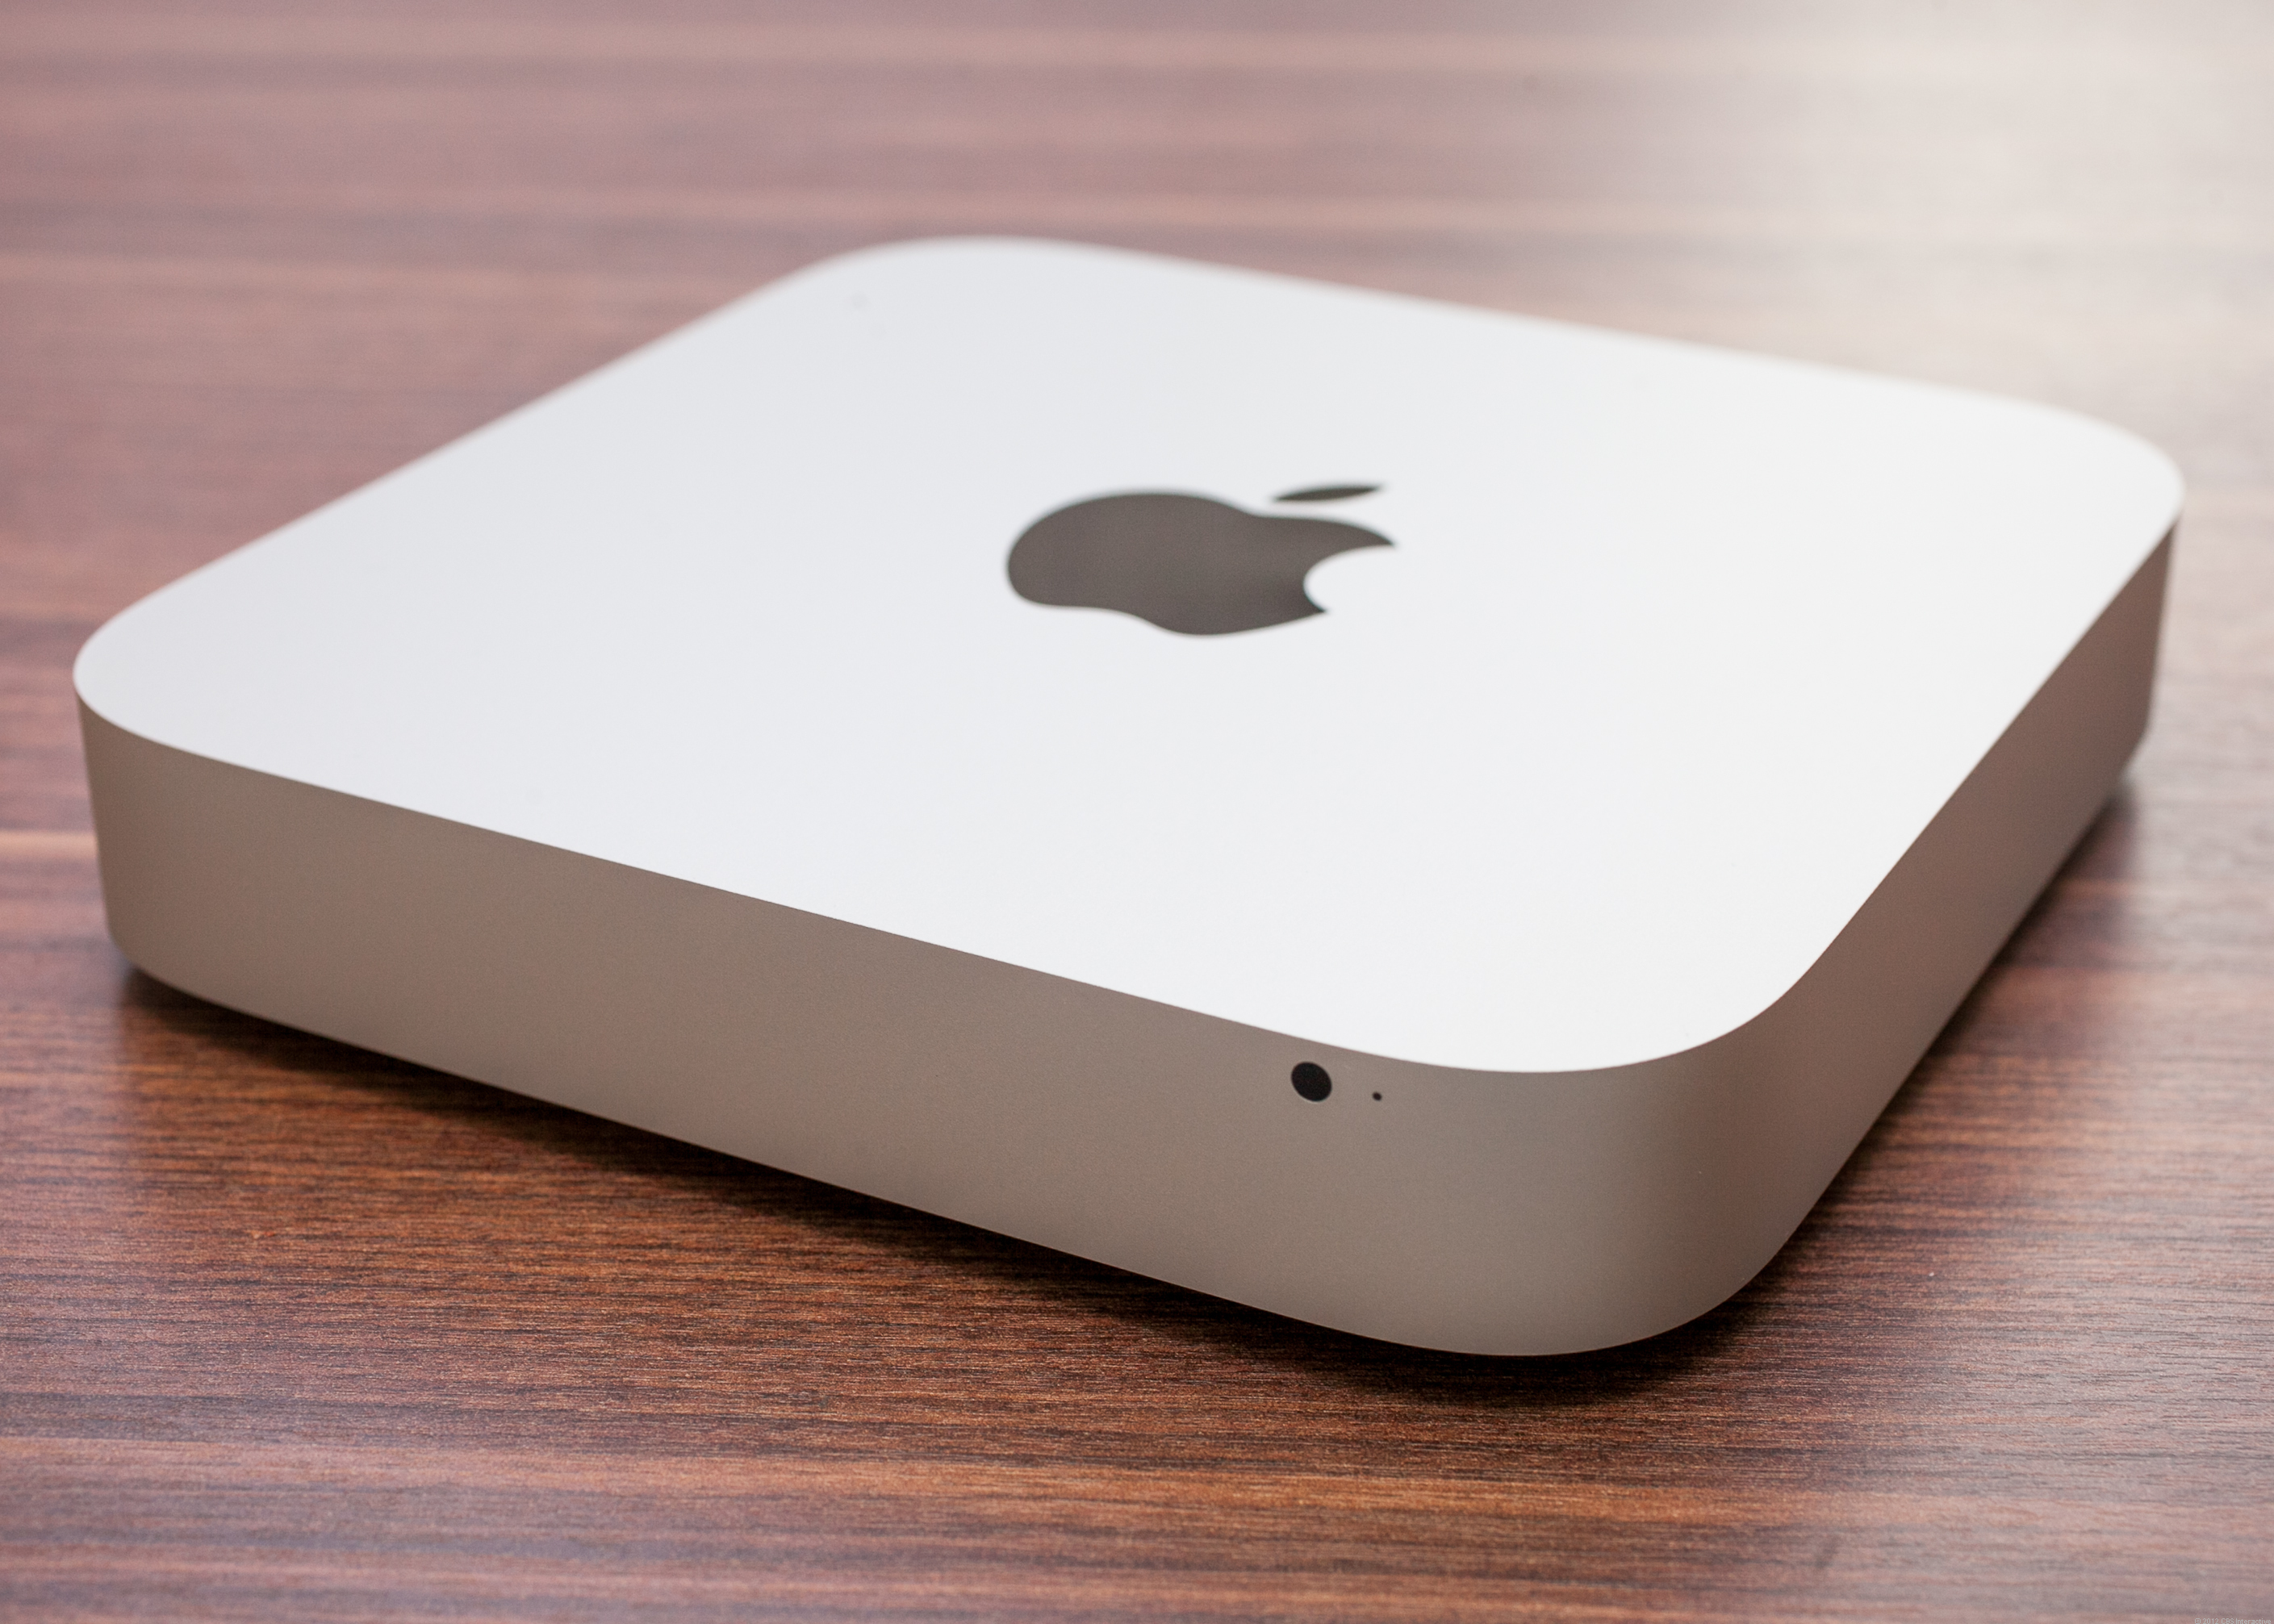 Apple Mac Mini with OS X Server (fall 2012)